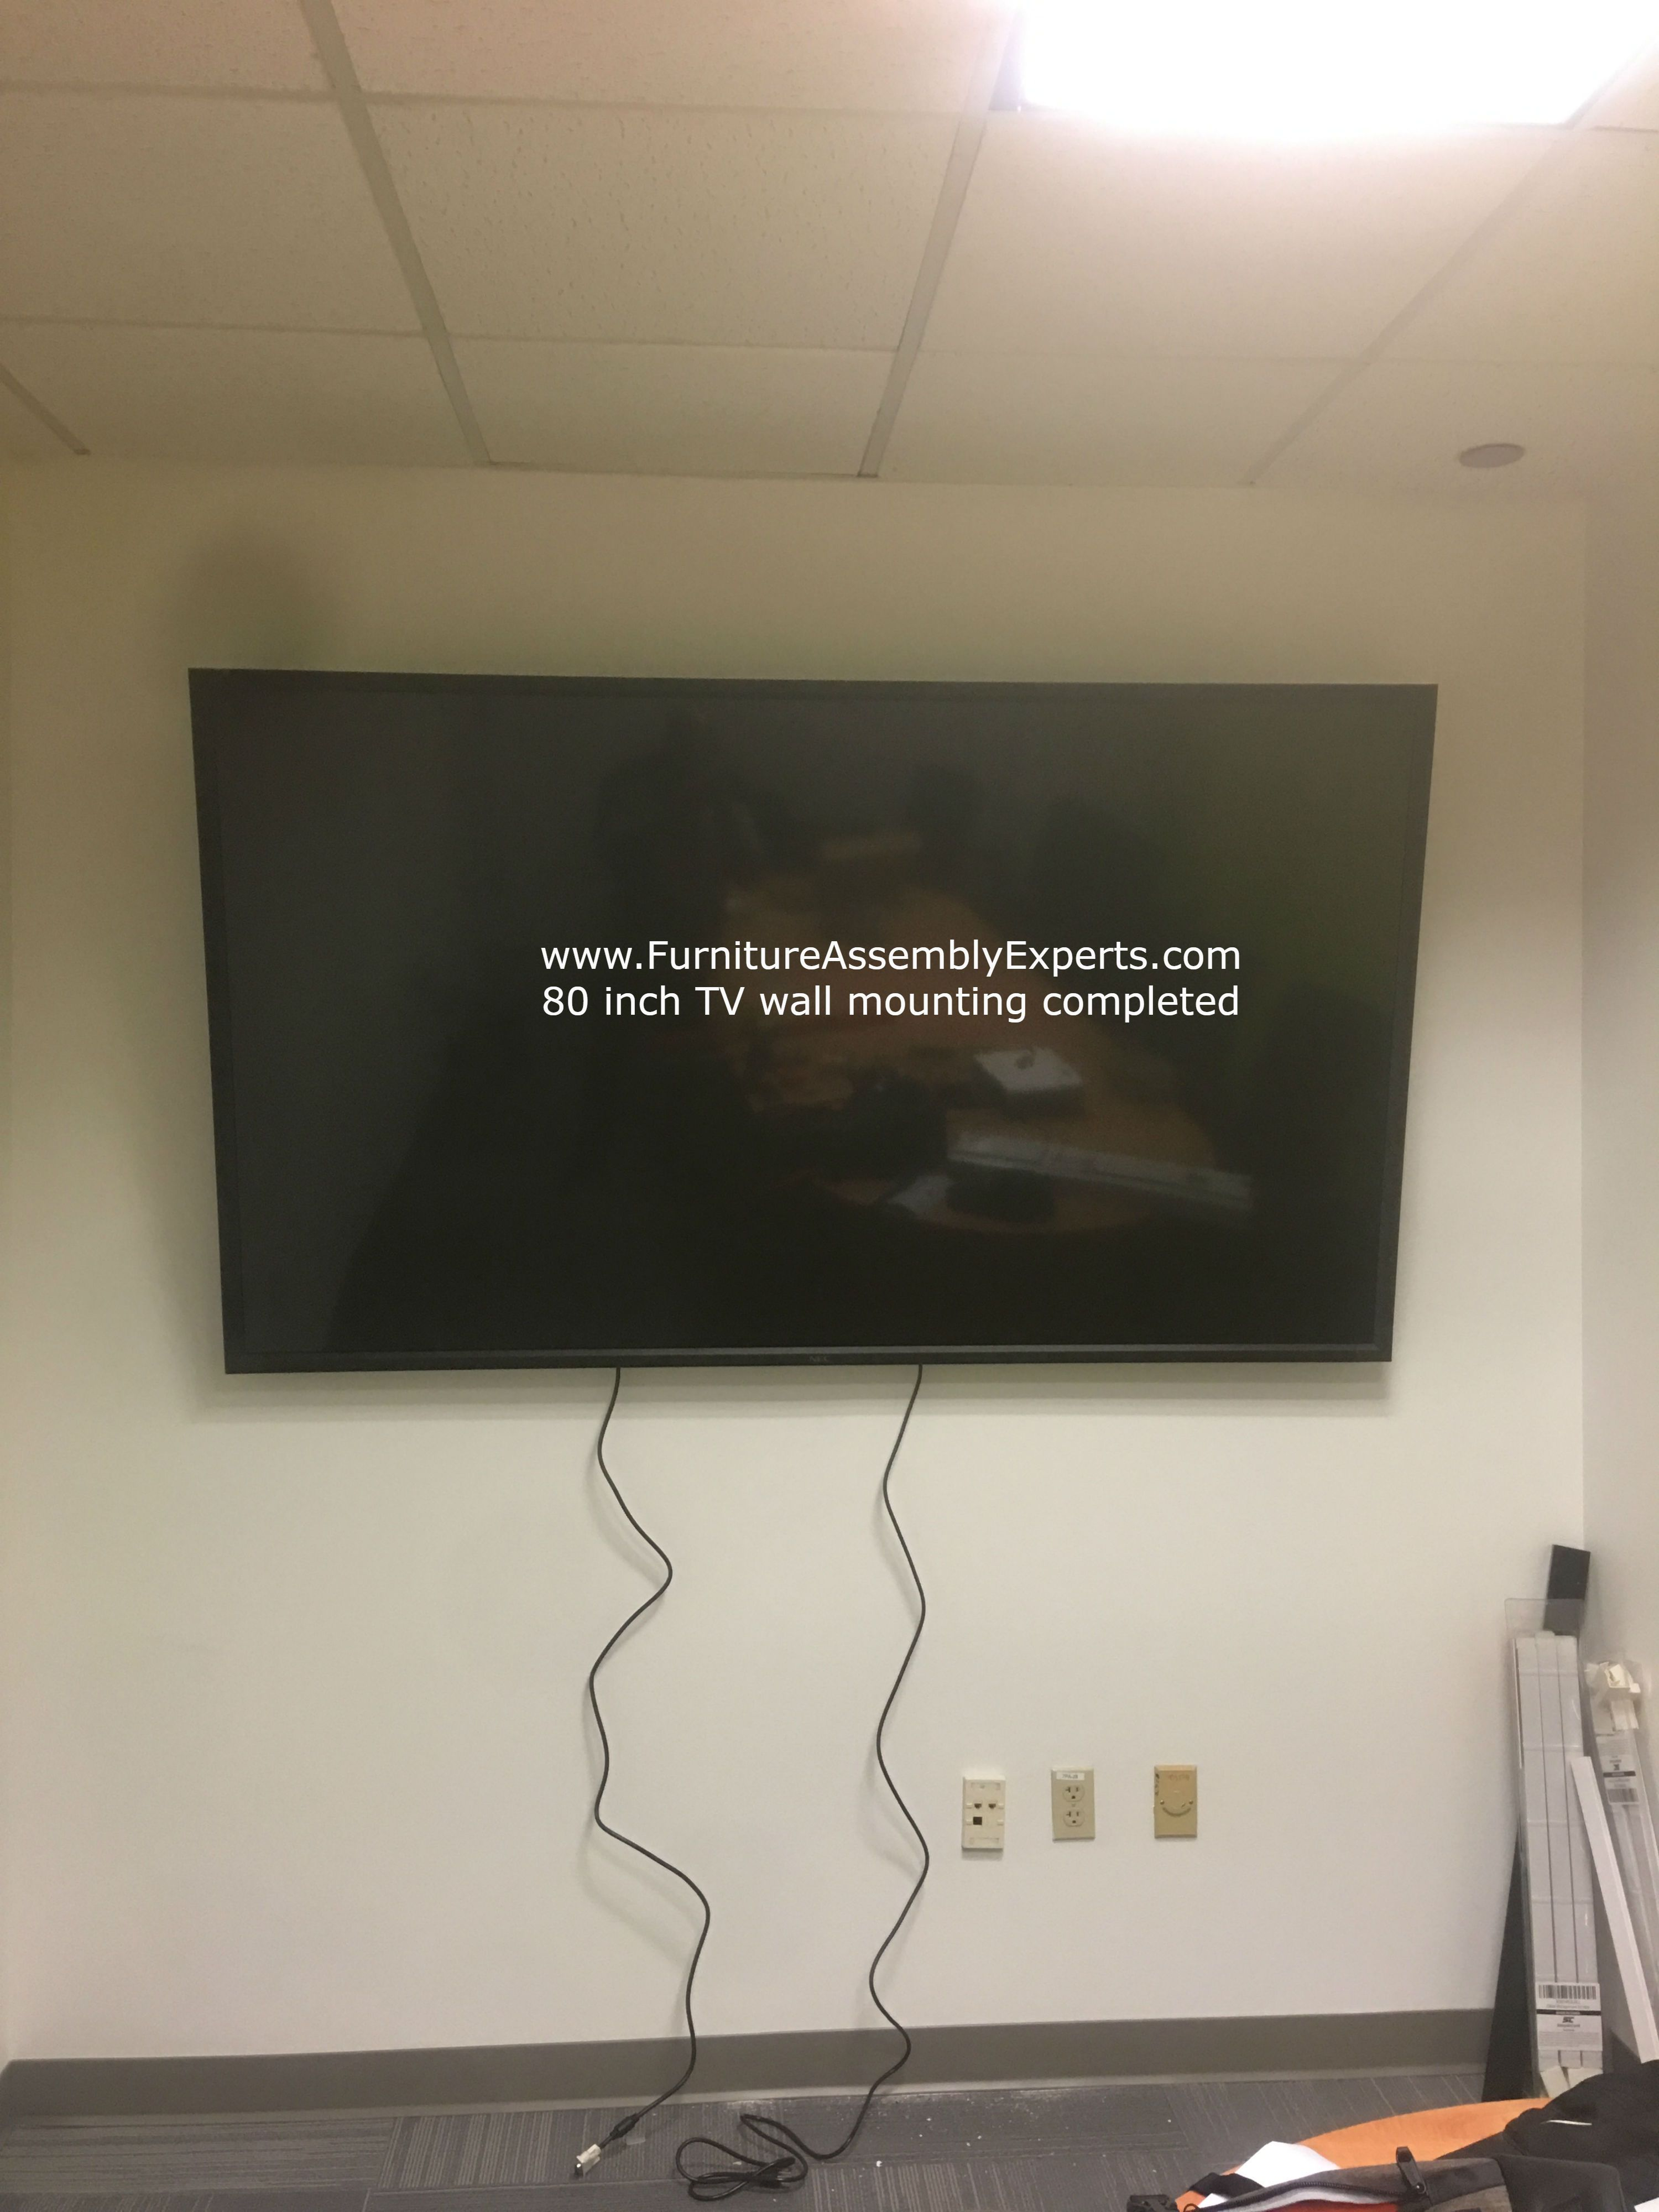 80 Inch Tv Wall Installation Completed For A Customer In Fort Meade Military Base Maryland By Professionals From F Tv Wall Installation Tv Wall Wall Mounted Tv